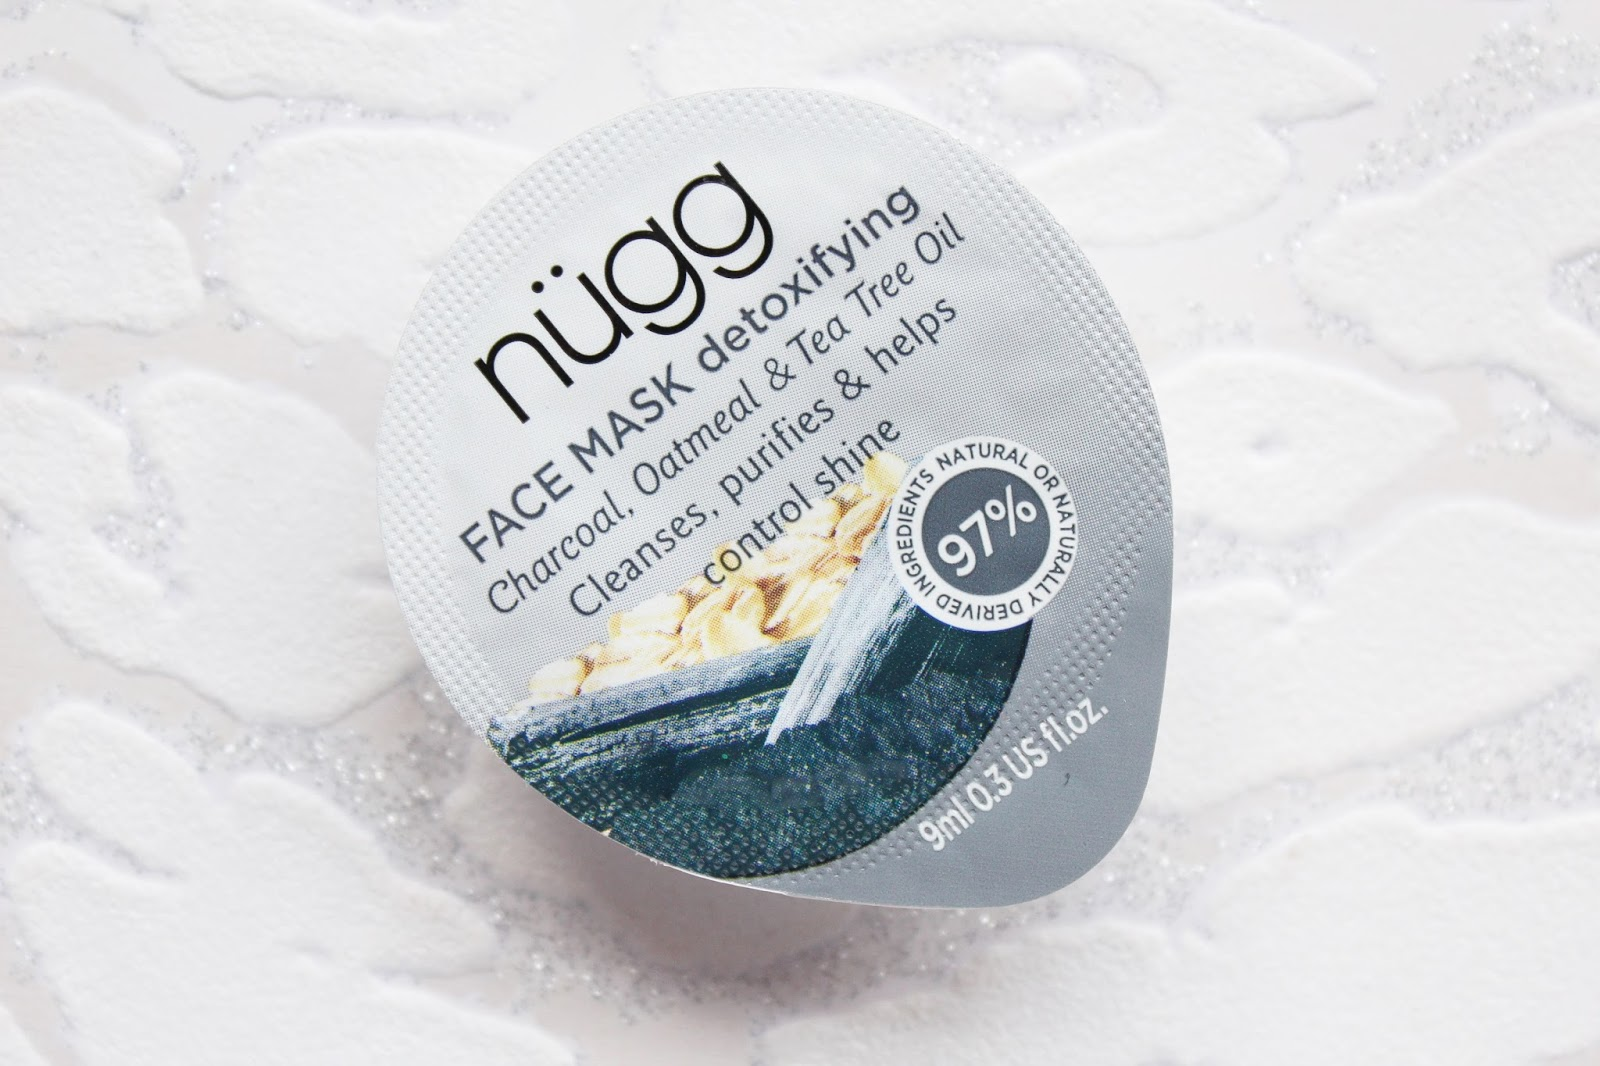 Nugg Charcoal Detoxifying Face Mask